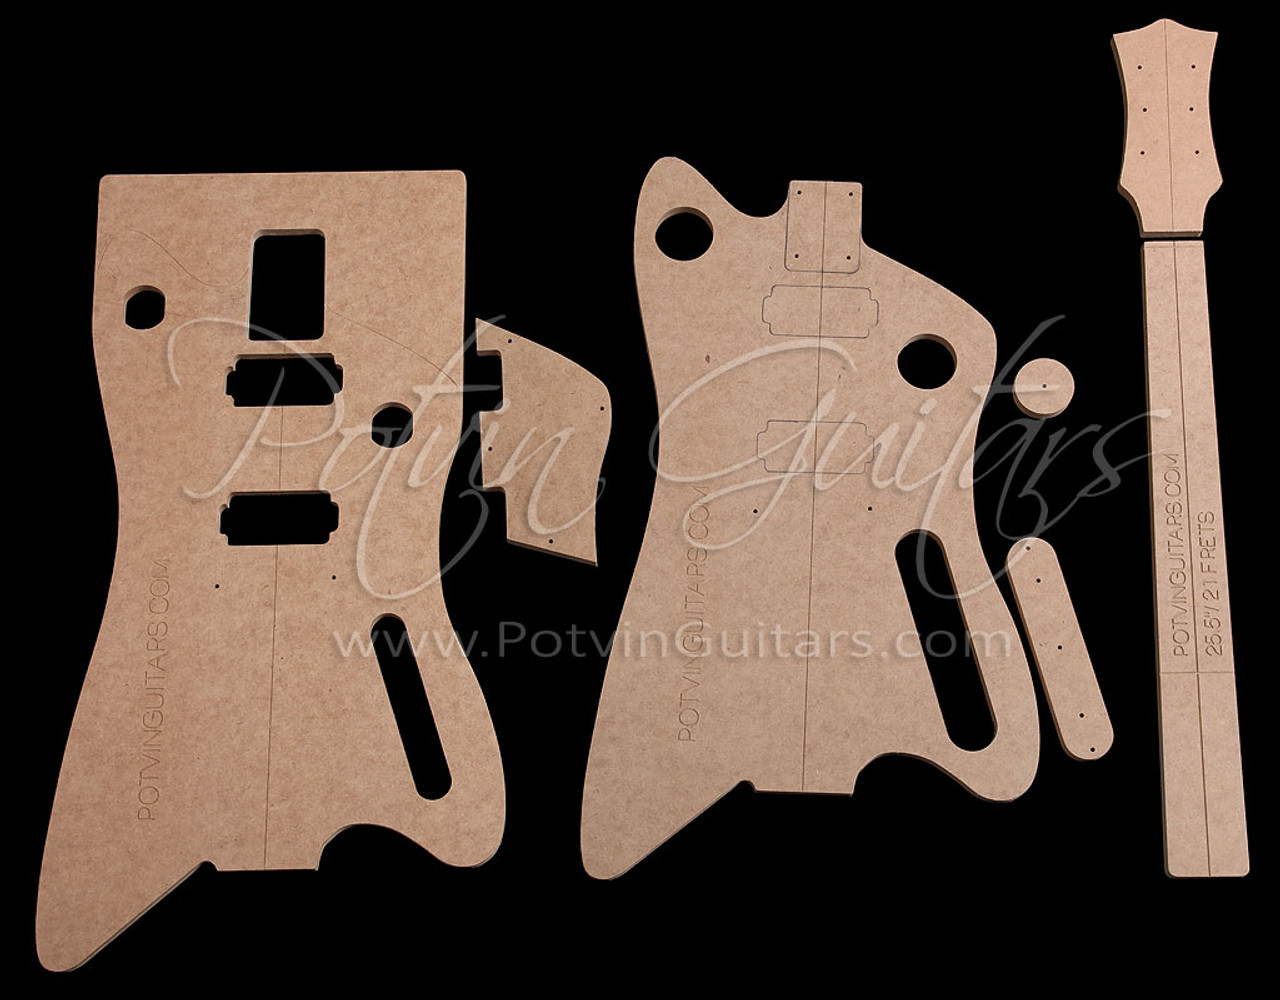 BB-Style bolt-on neck guitar template set